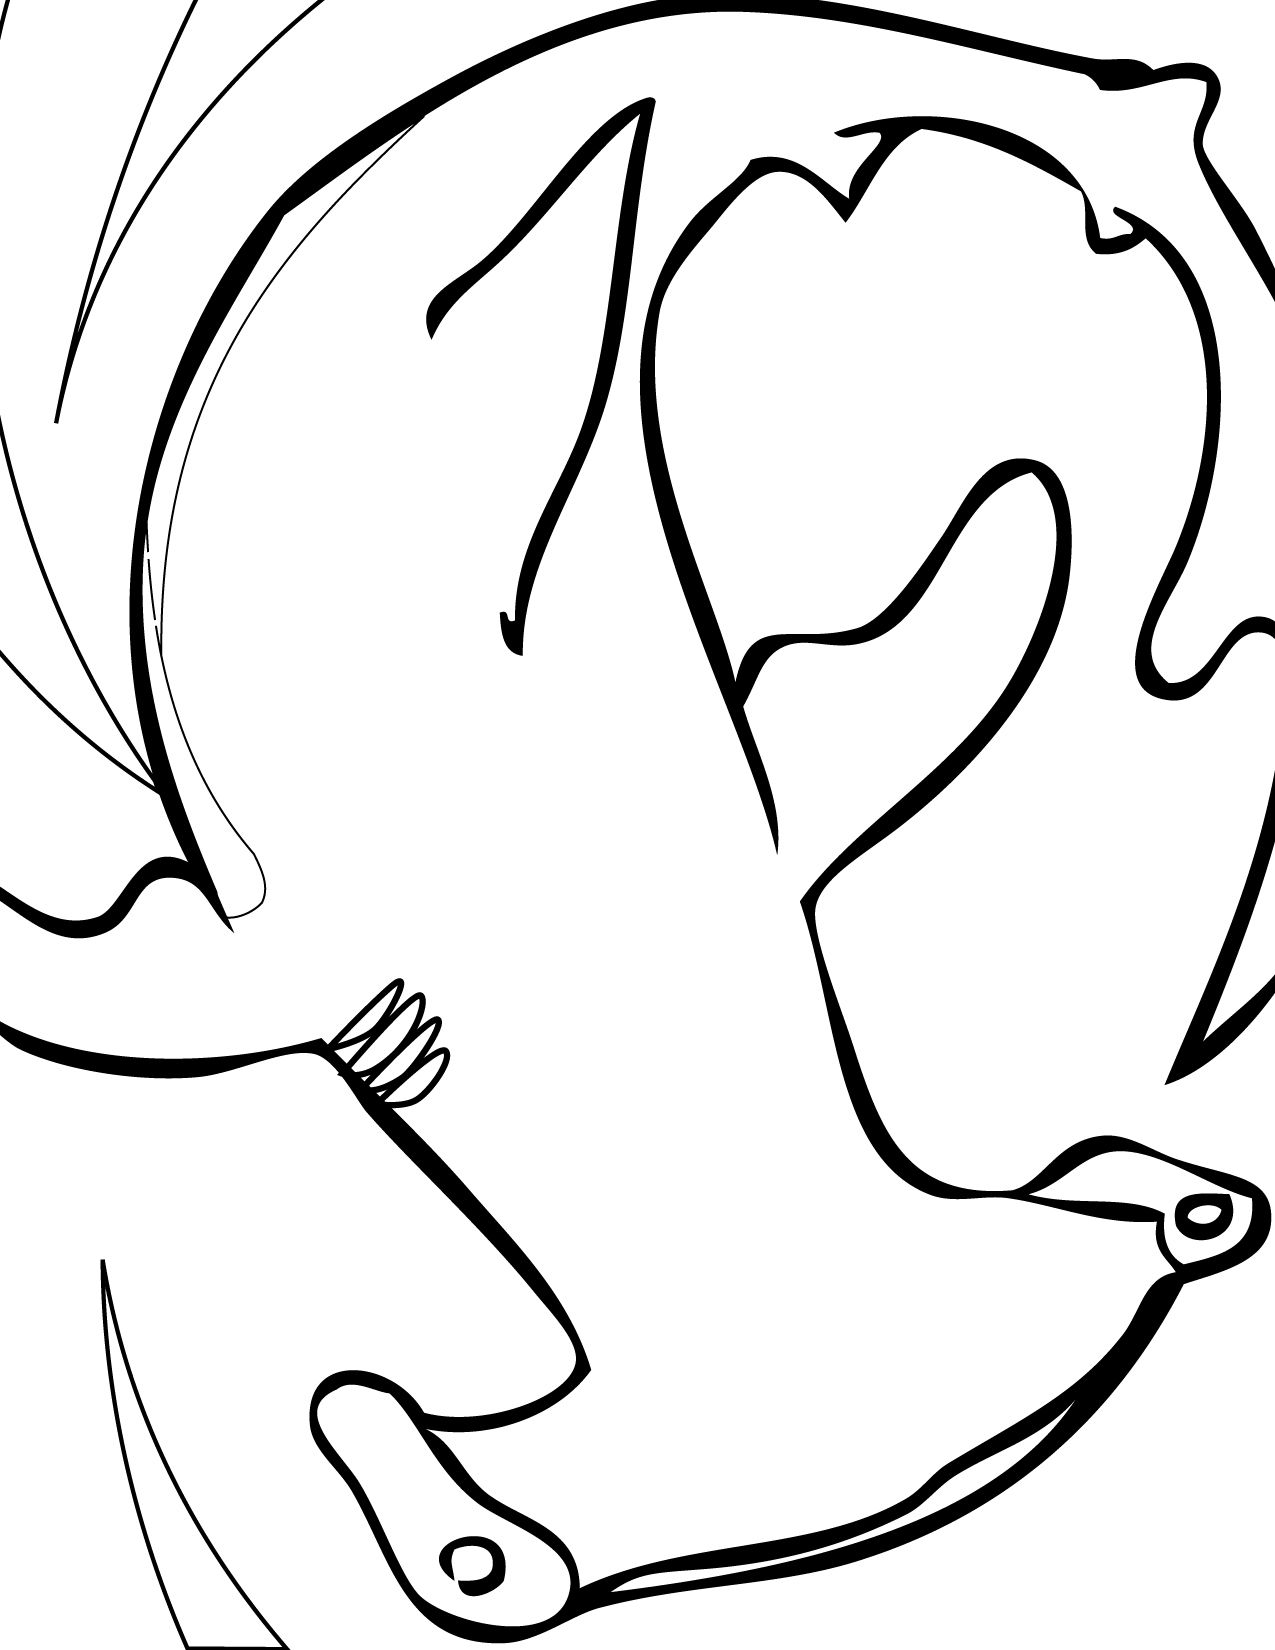 free kids shark coloring pages 4 free kids shark coloring pages 4  activities shark coloring pages 4 thr… | Shark coloring pages, Coloring  pages, Free coloring pages